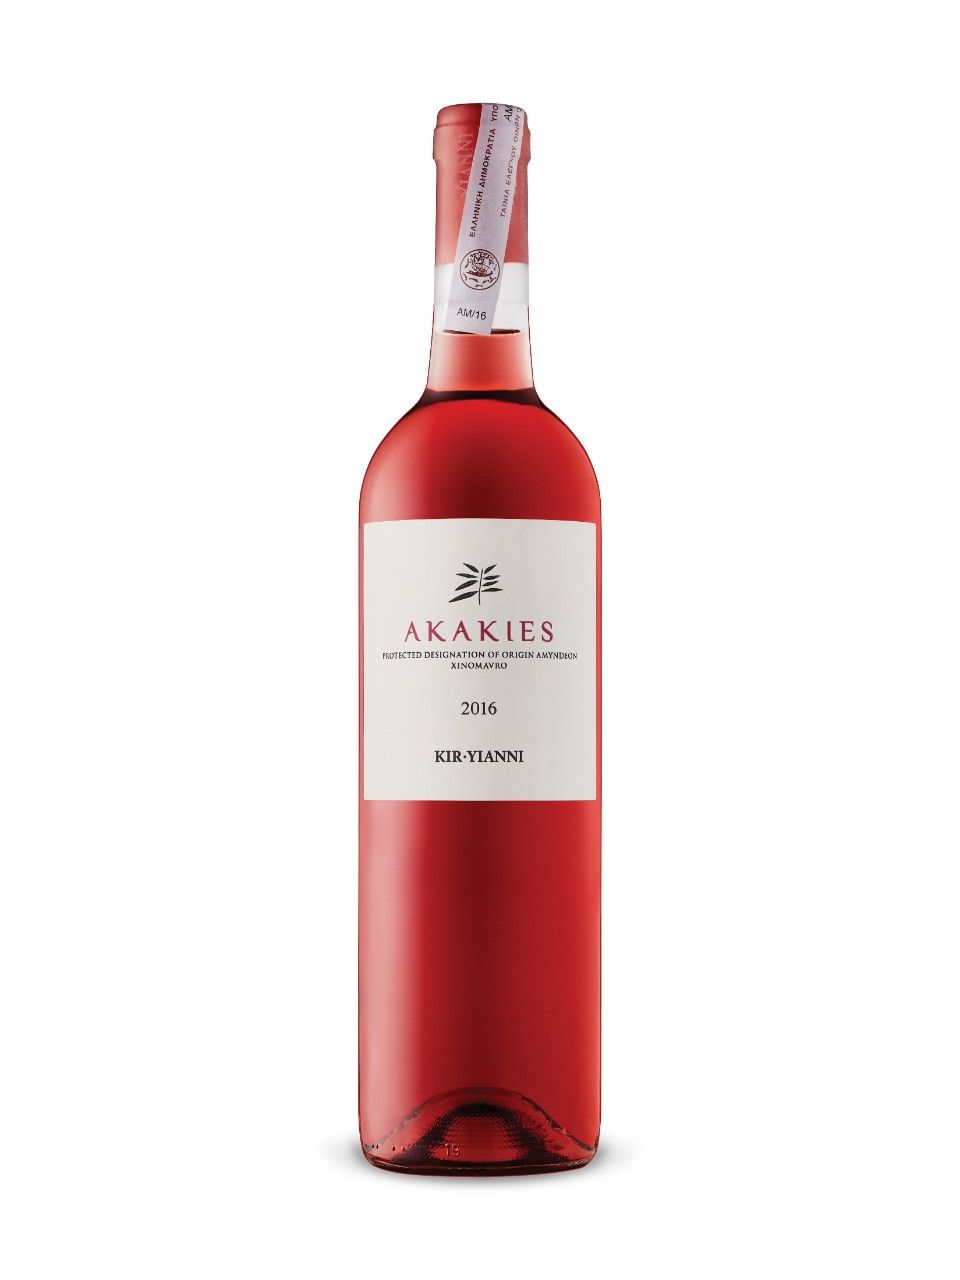 Kir Yianni Akakies Xinomavro Rose 2016 Amyndeon Macedonia P D O Greece Natalie S Score 89 100 Http Www Nataliem Wine Bottle Wine Night Rose Wine Bottle